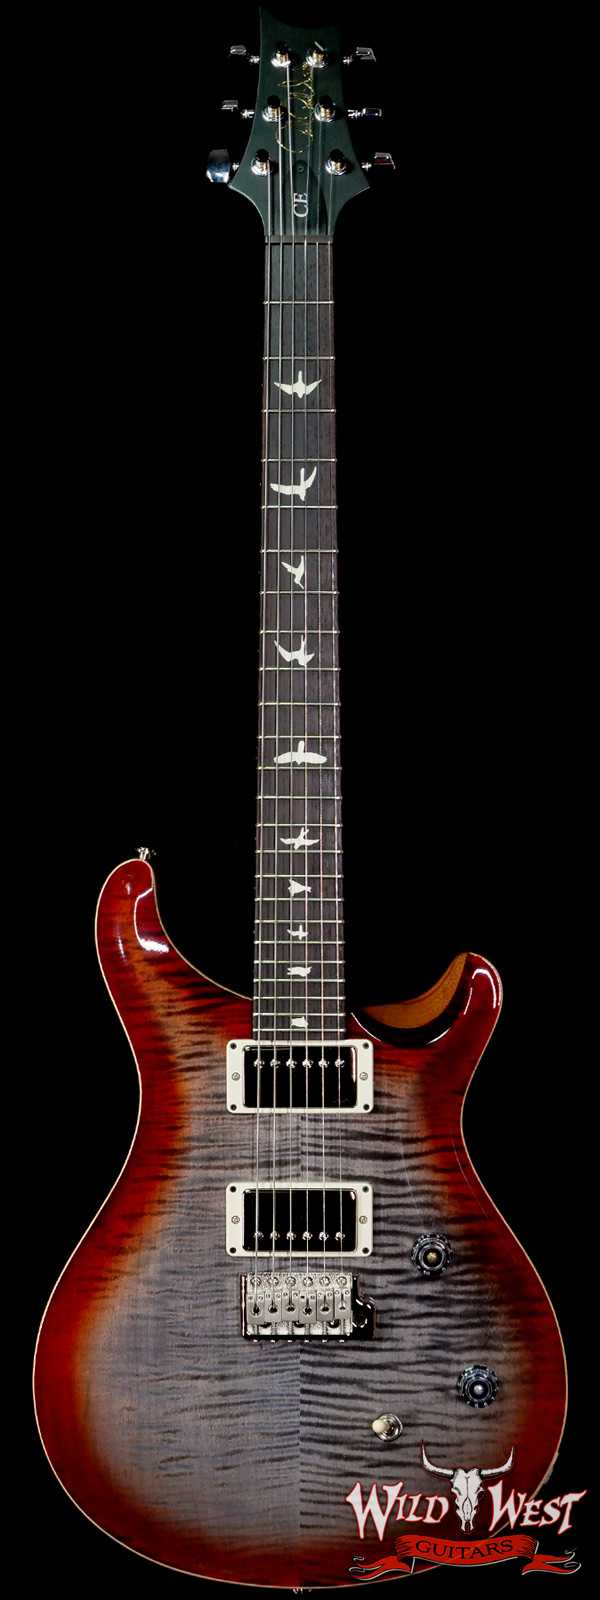 PRS Wild West Guitars Special Run Flame Top Black Neck CE 24 Faded Gray Black Cherry Burst 315723